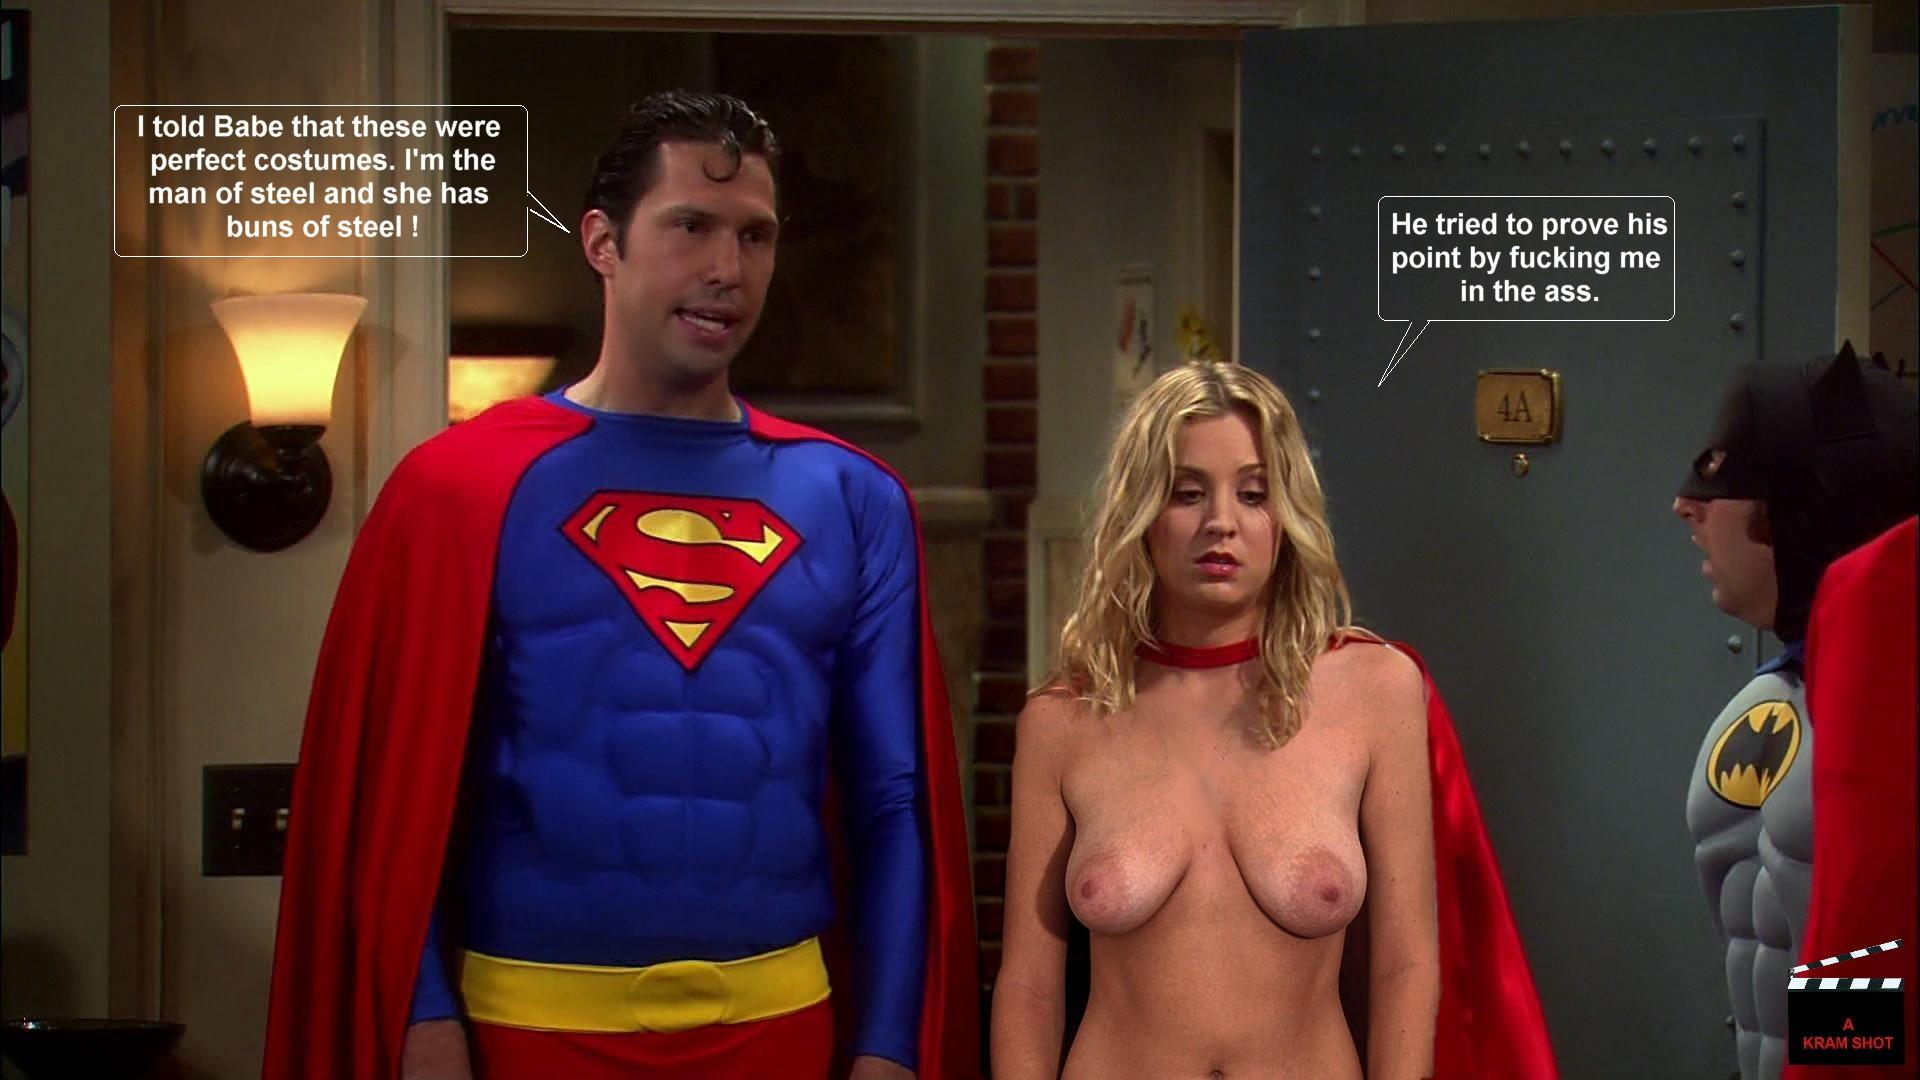 sex-big-bang-theory-nude-cosplay-cody-keith-hospital